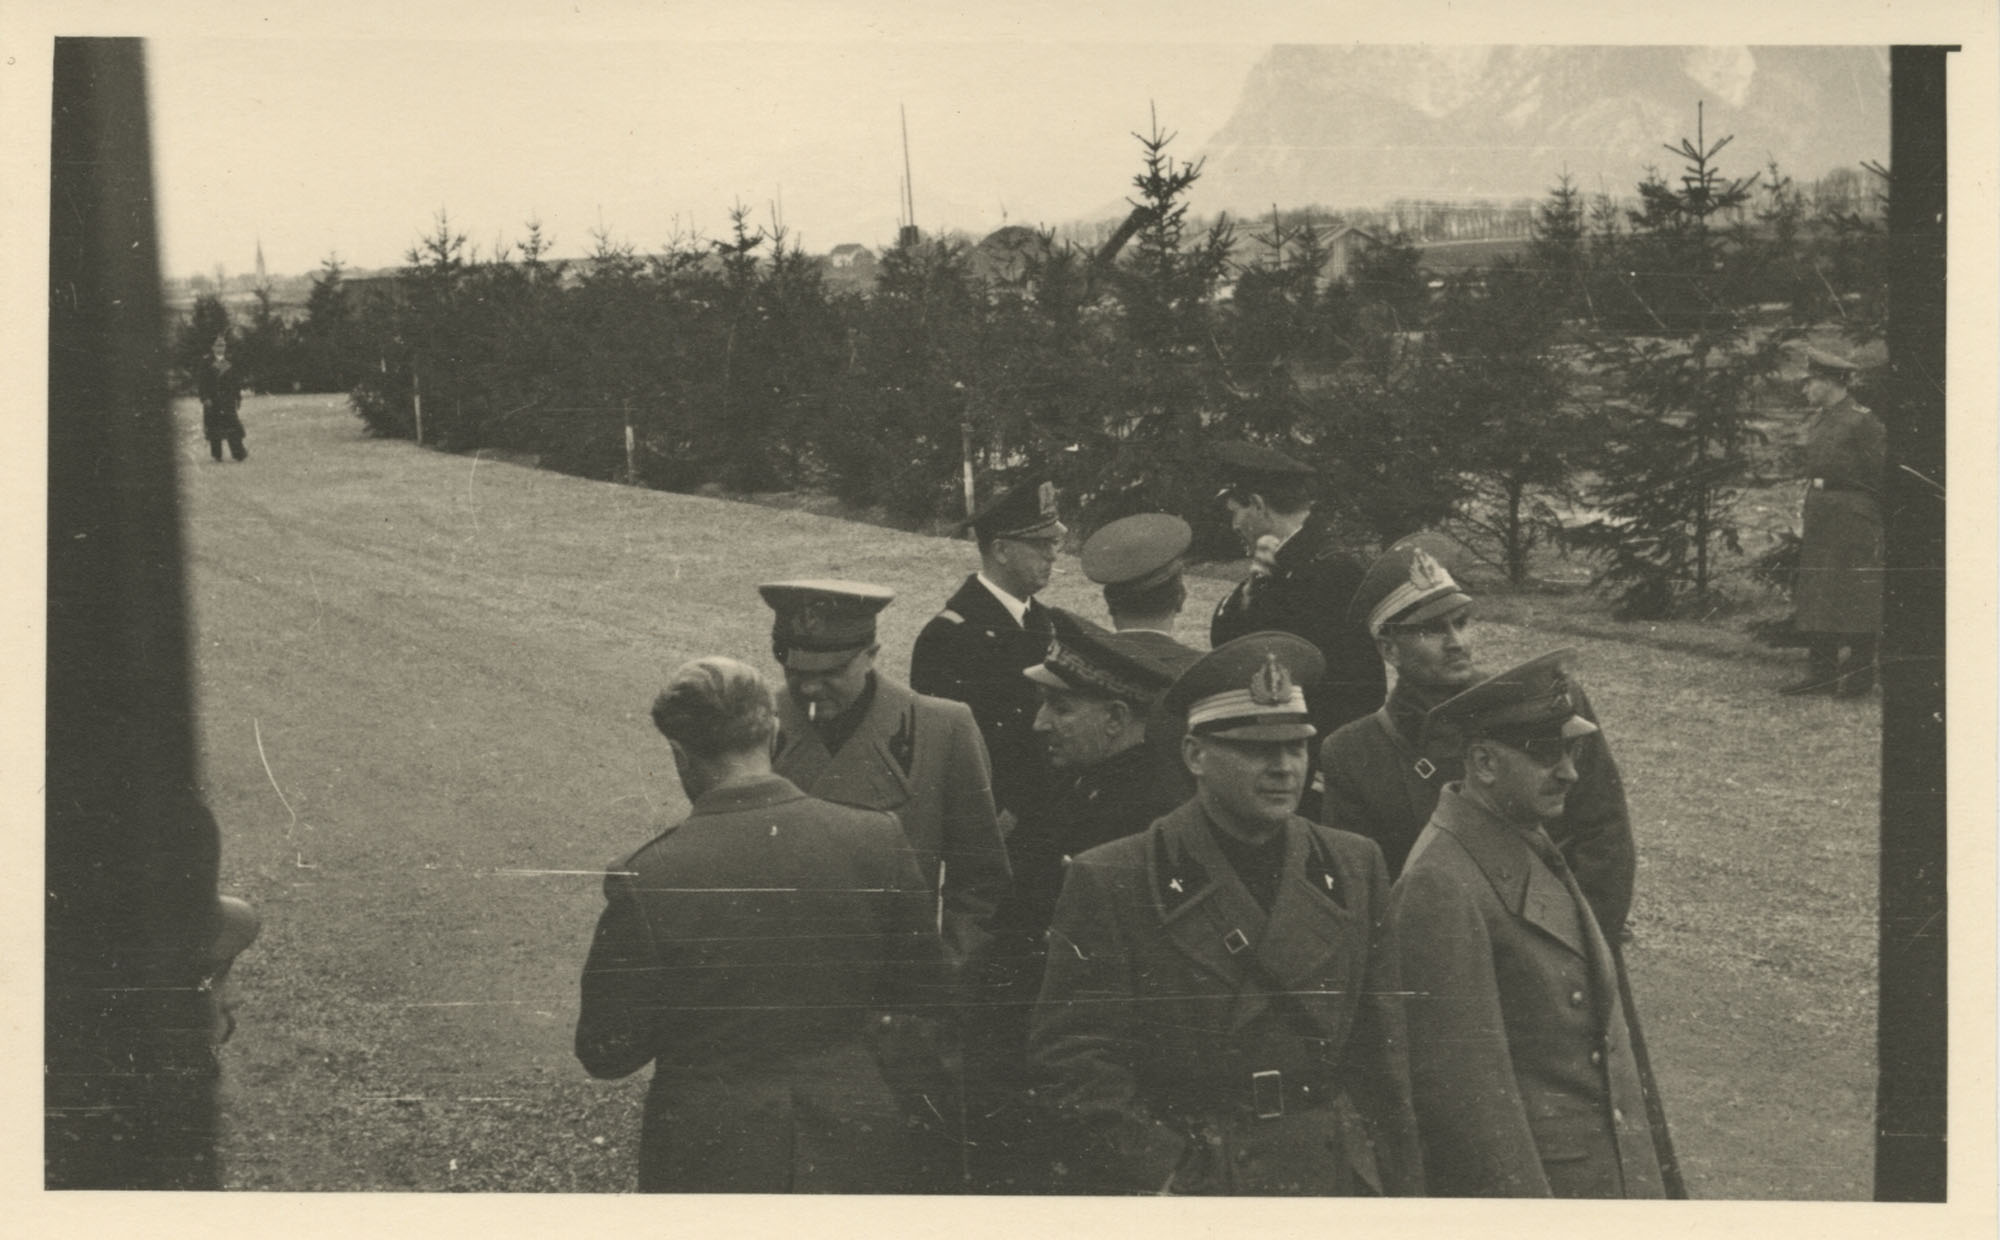 Mario Pansa greeting military personnel, Photograph 3